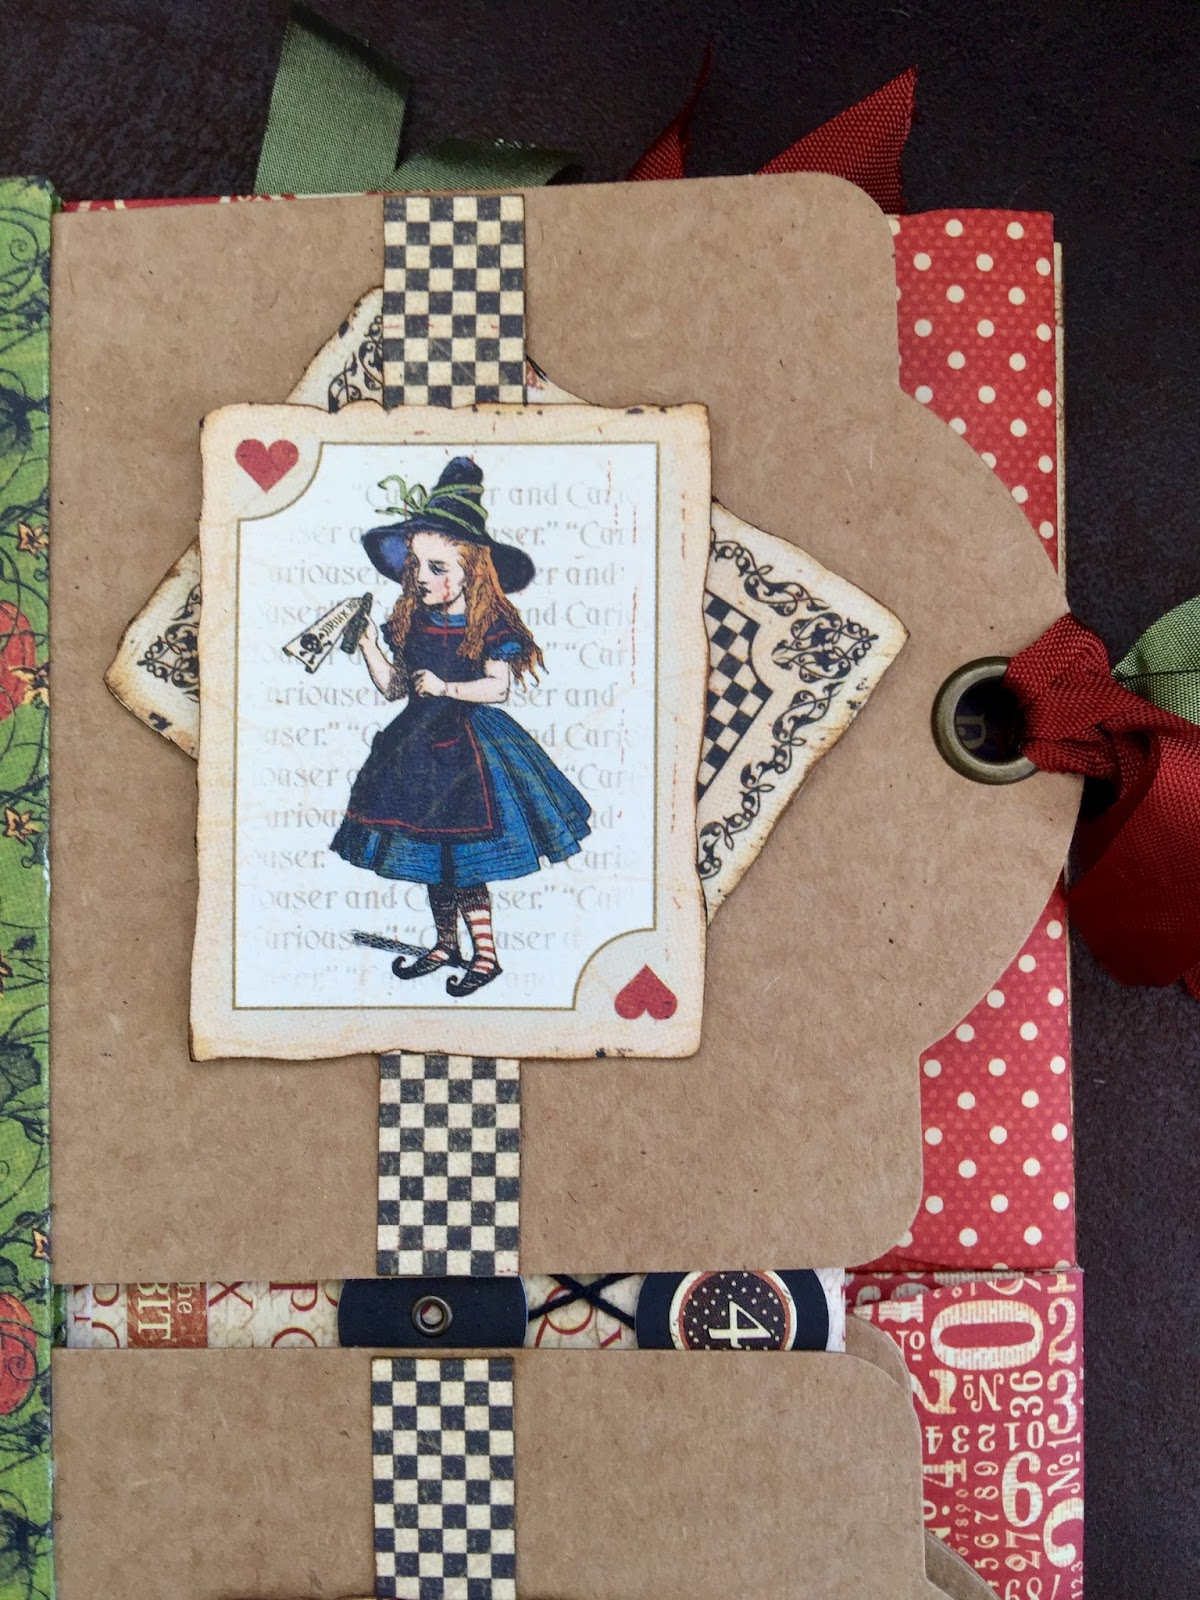 Tag&Pocket Album Halloween in Wonderland Tutorial  by Marina Blaukitchen Product by Graphic 45 photo 10.jpg